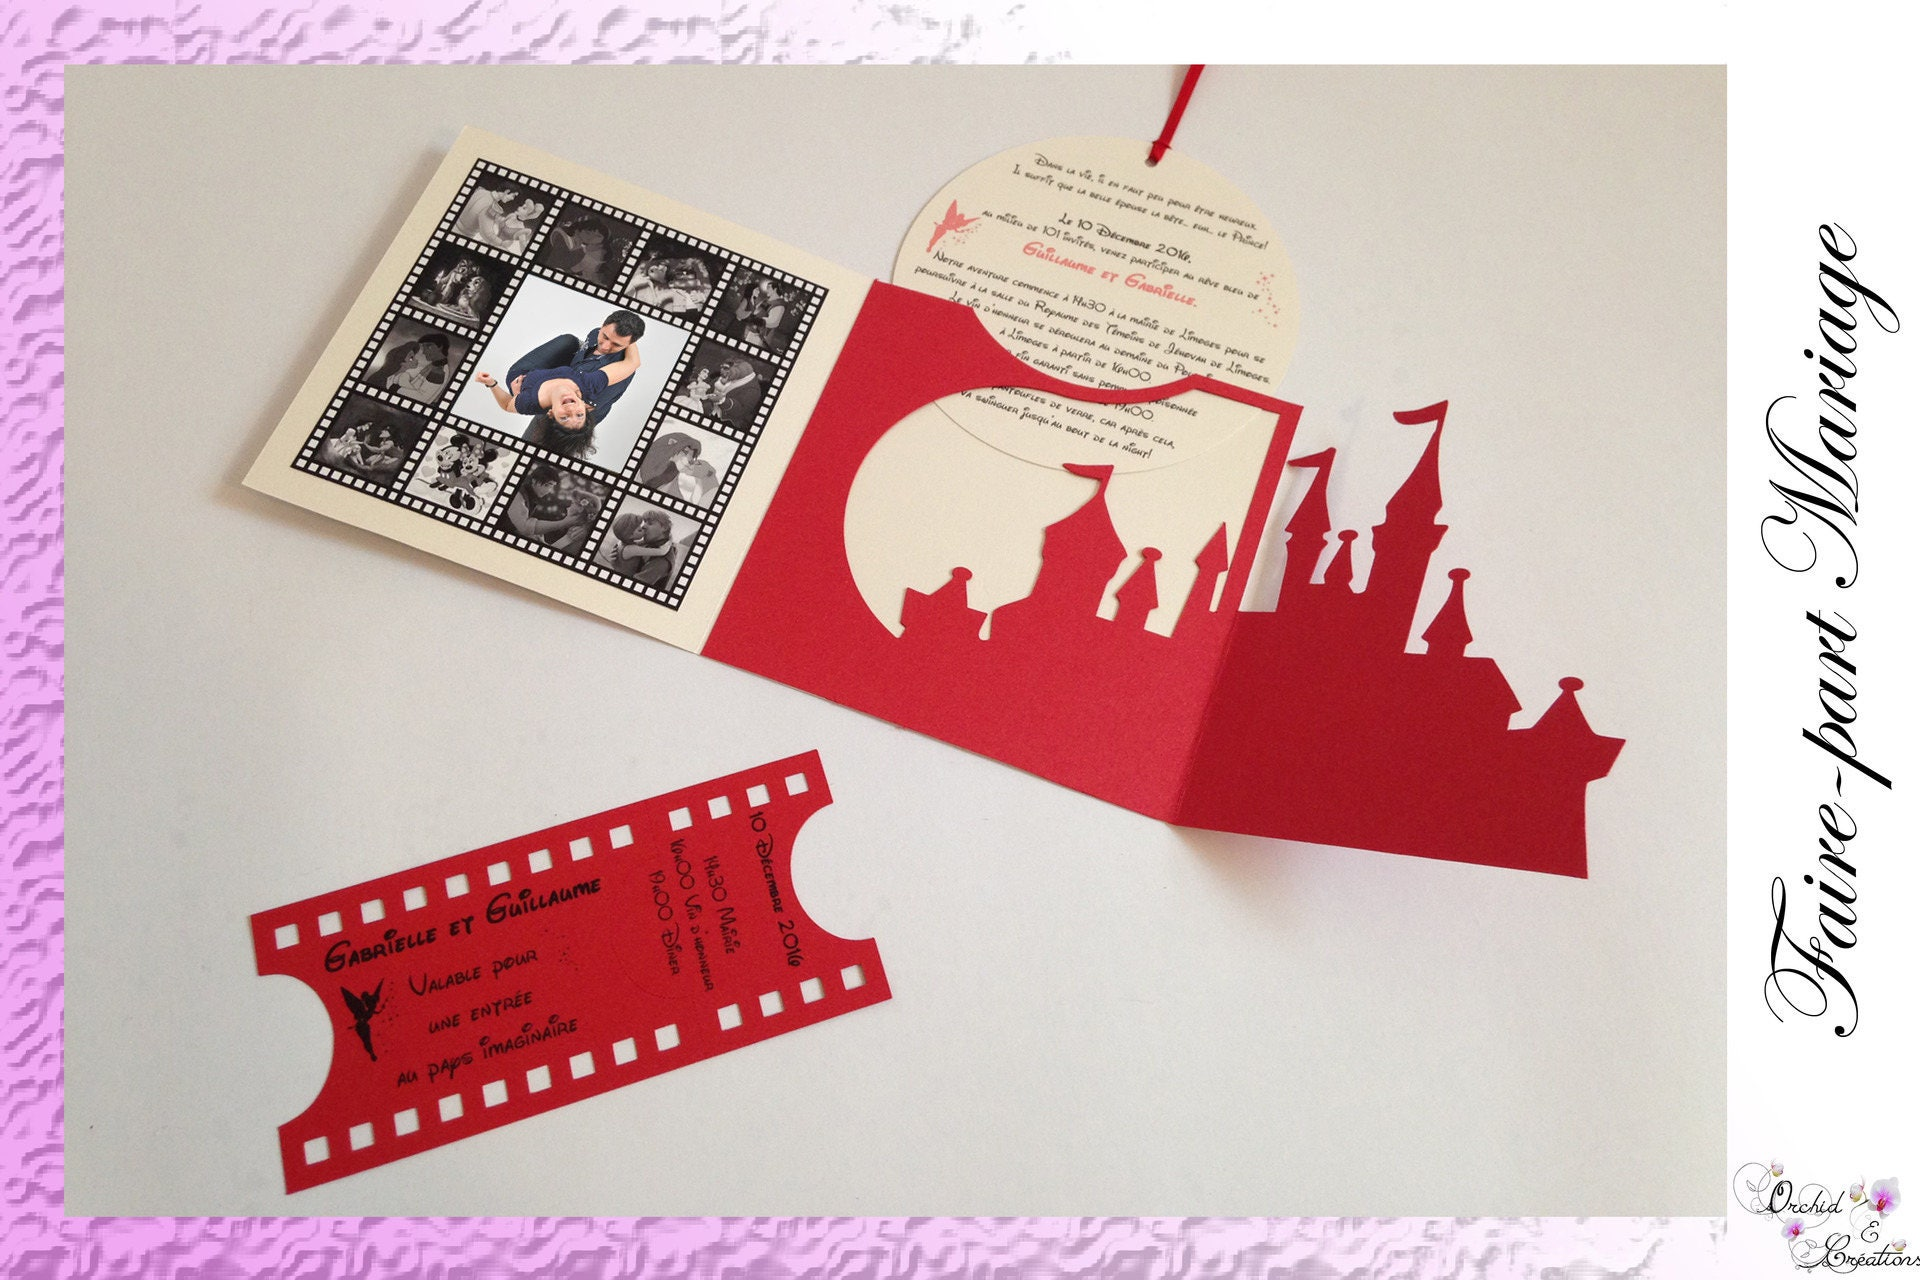 Castle princesses cinema ticket wedding invitation